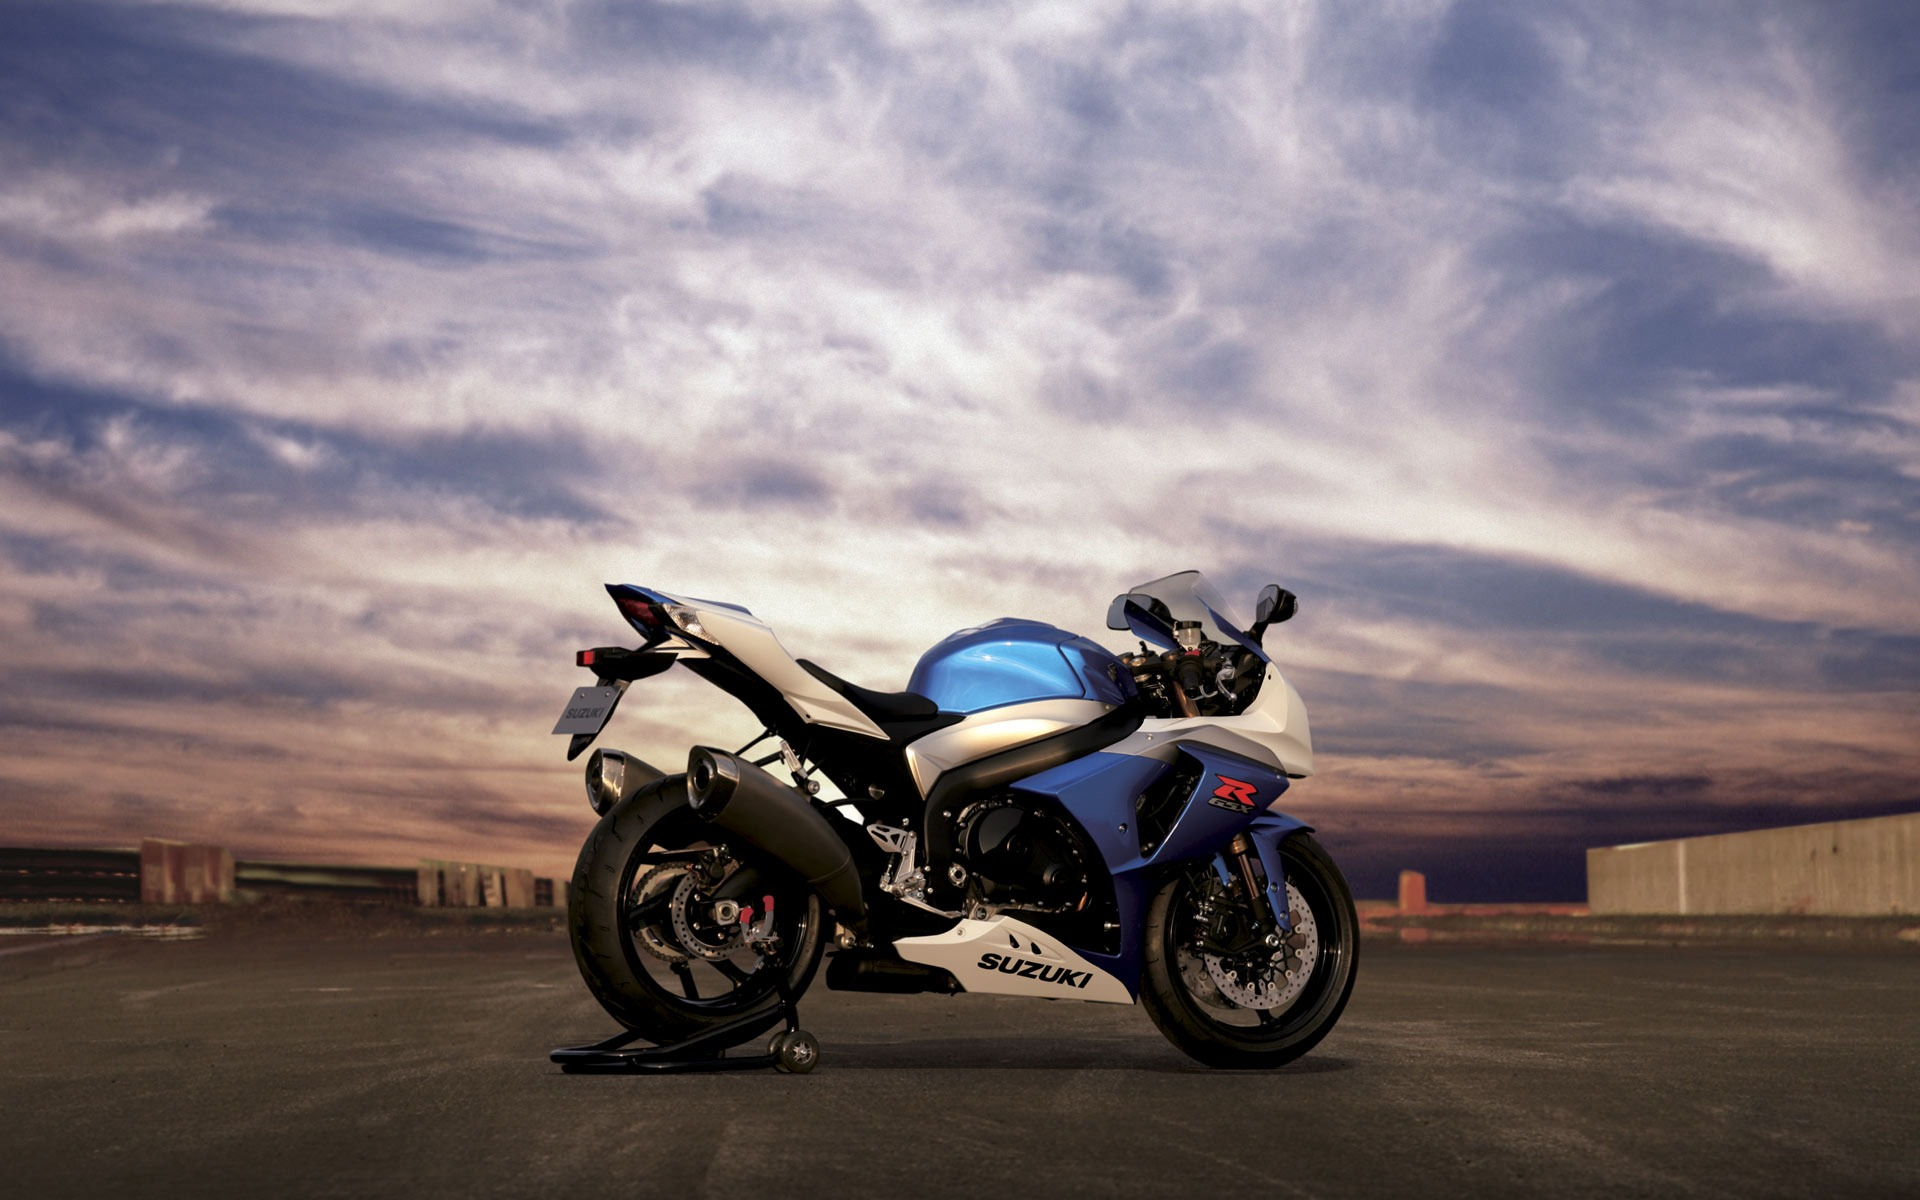 suzuki gsx r1000 wallpaper suzuki motorcycles wallpapers in jpg